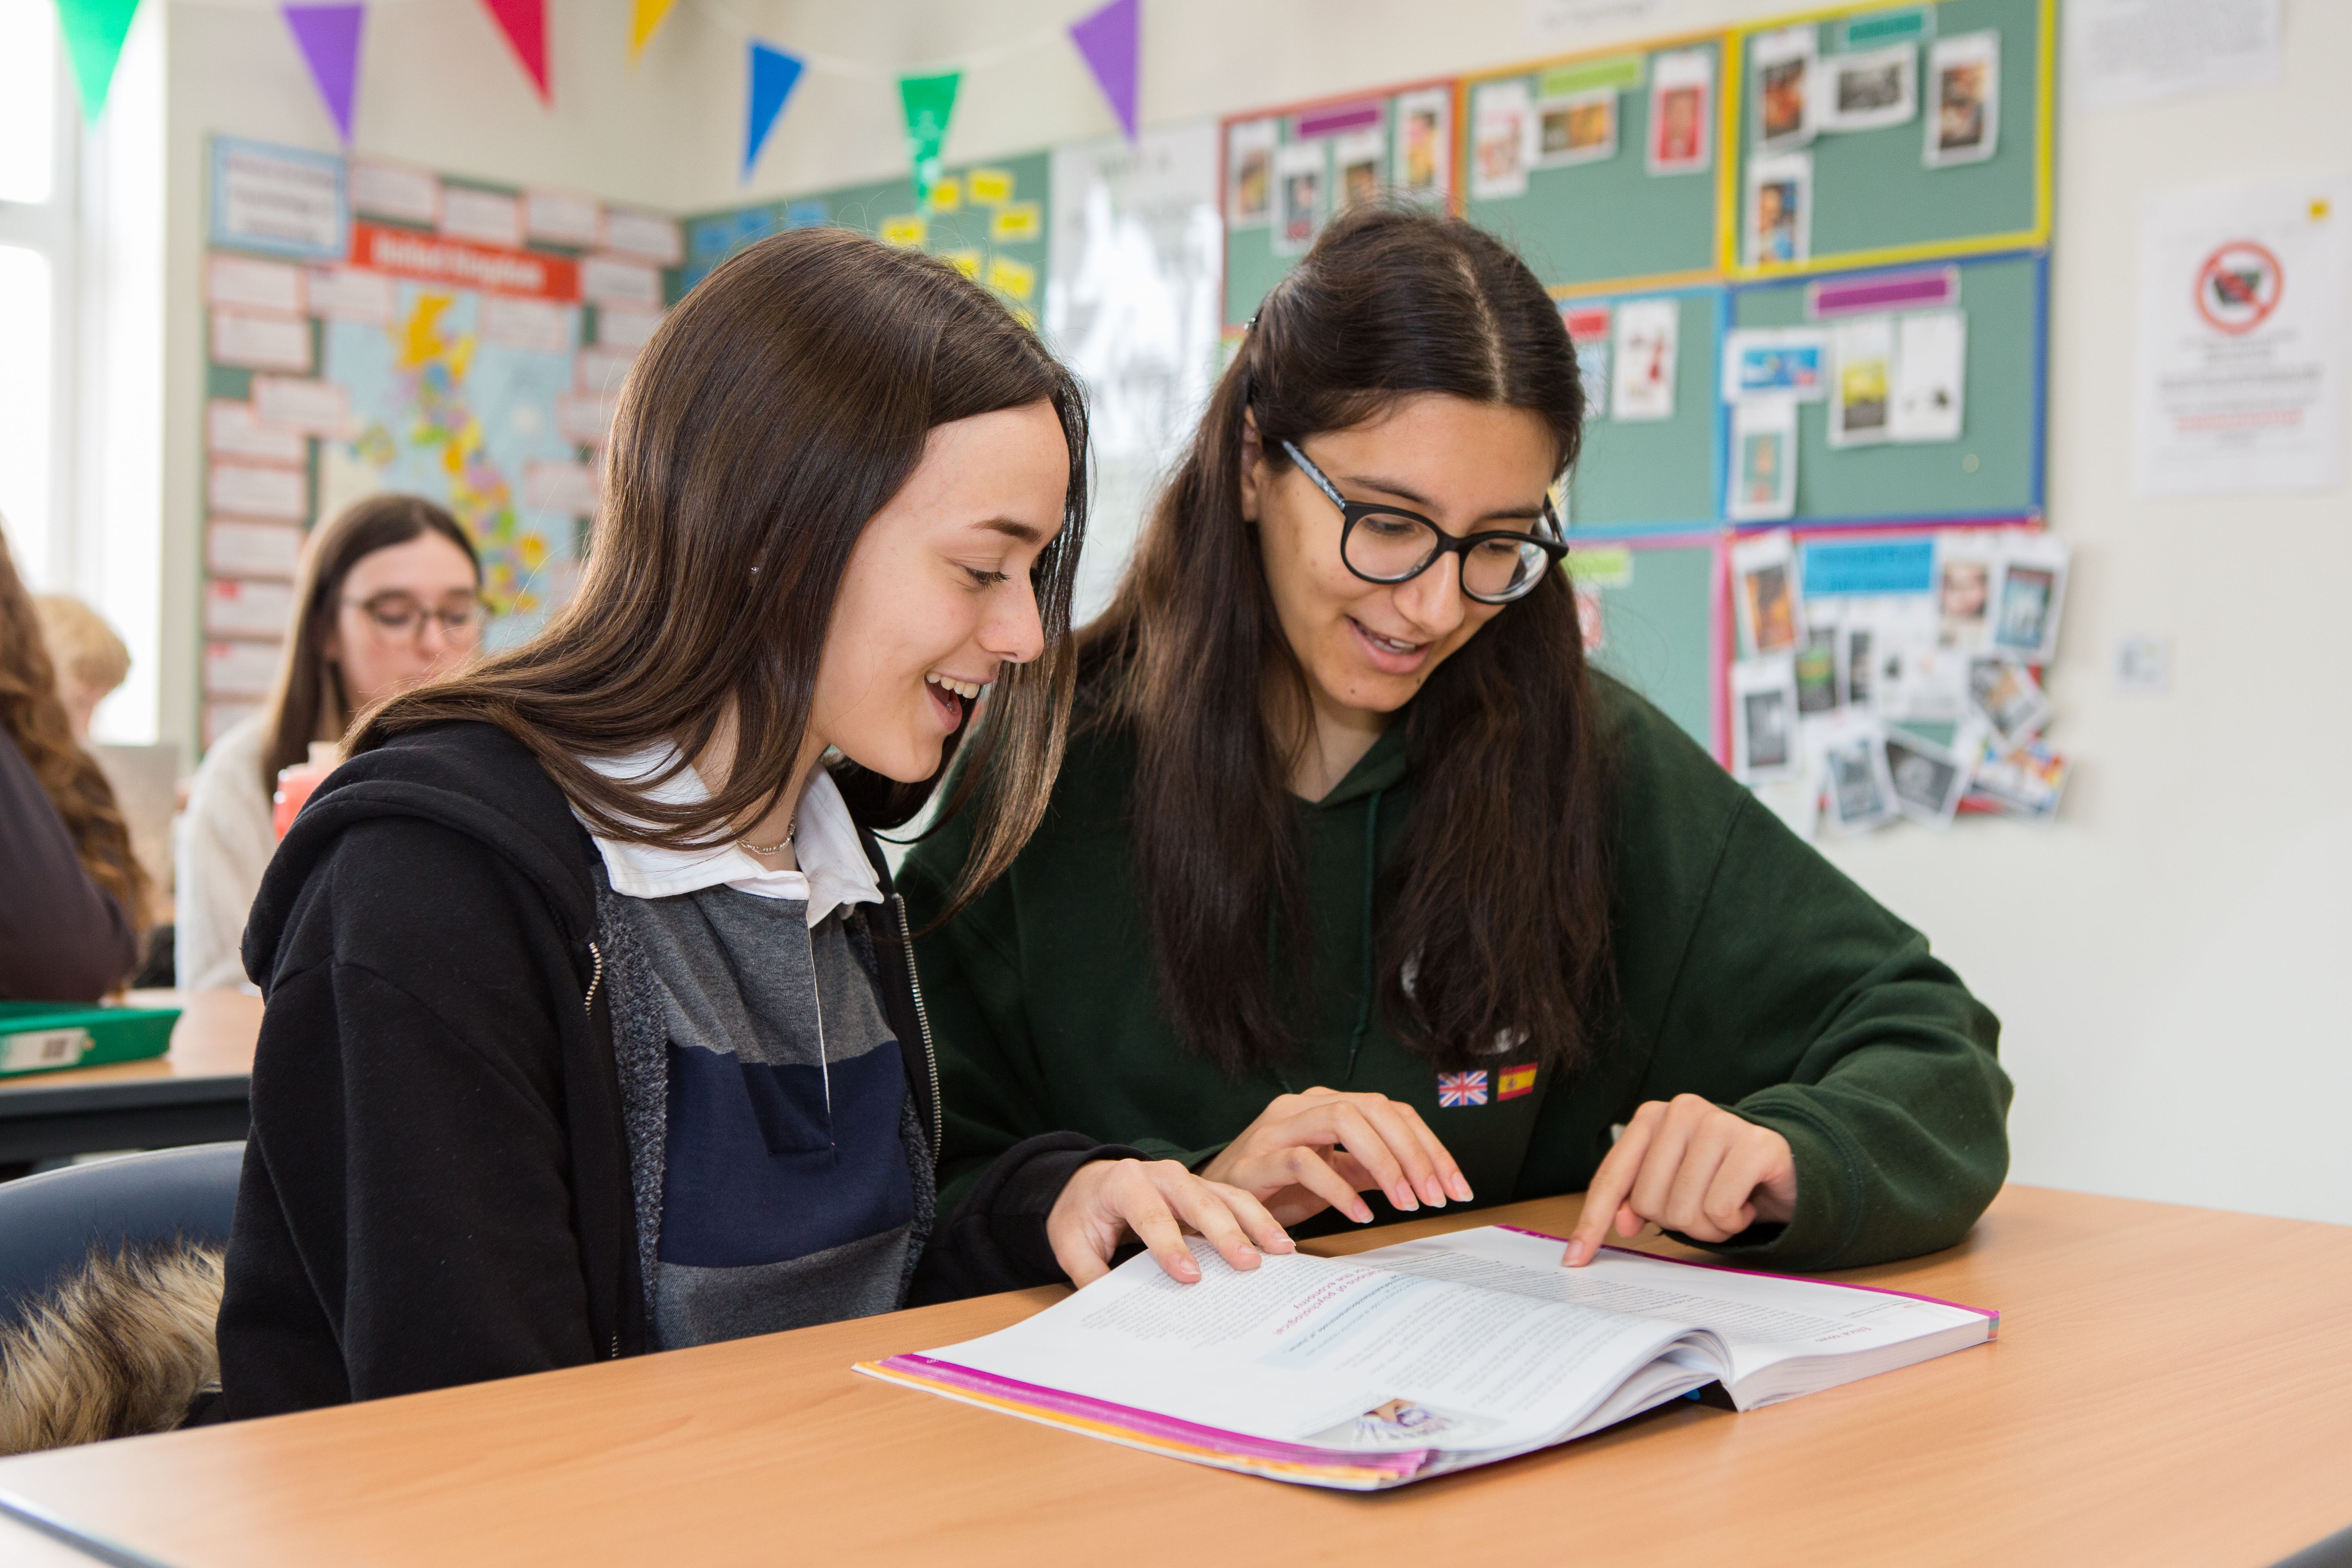 Business Profile: St Chris – Not Your Typical Independent School